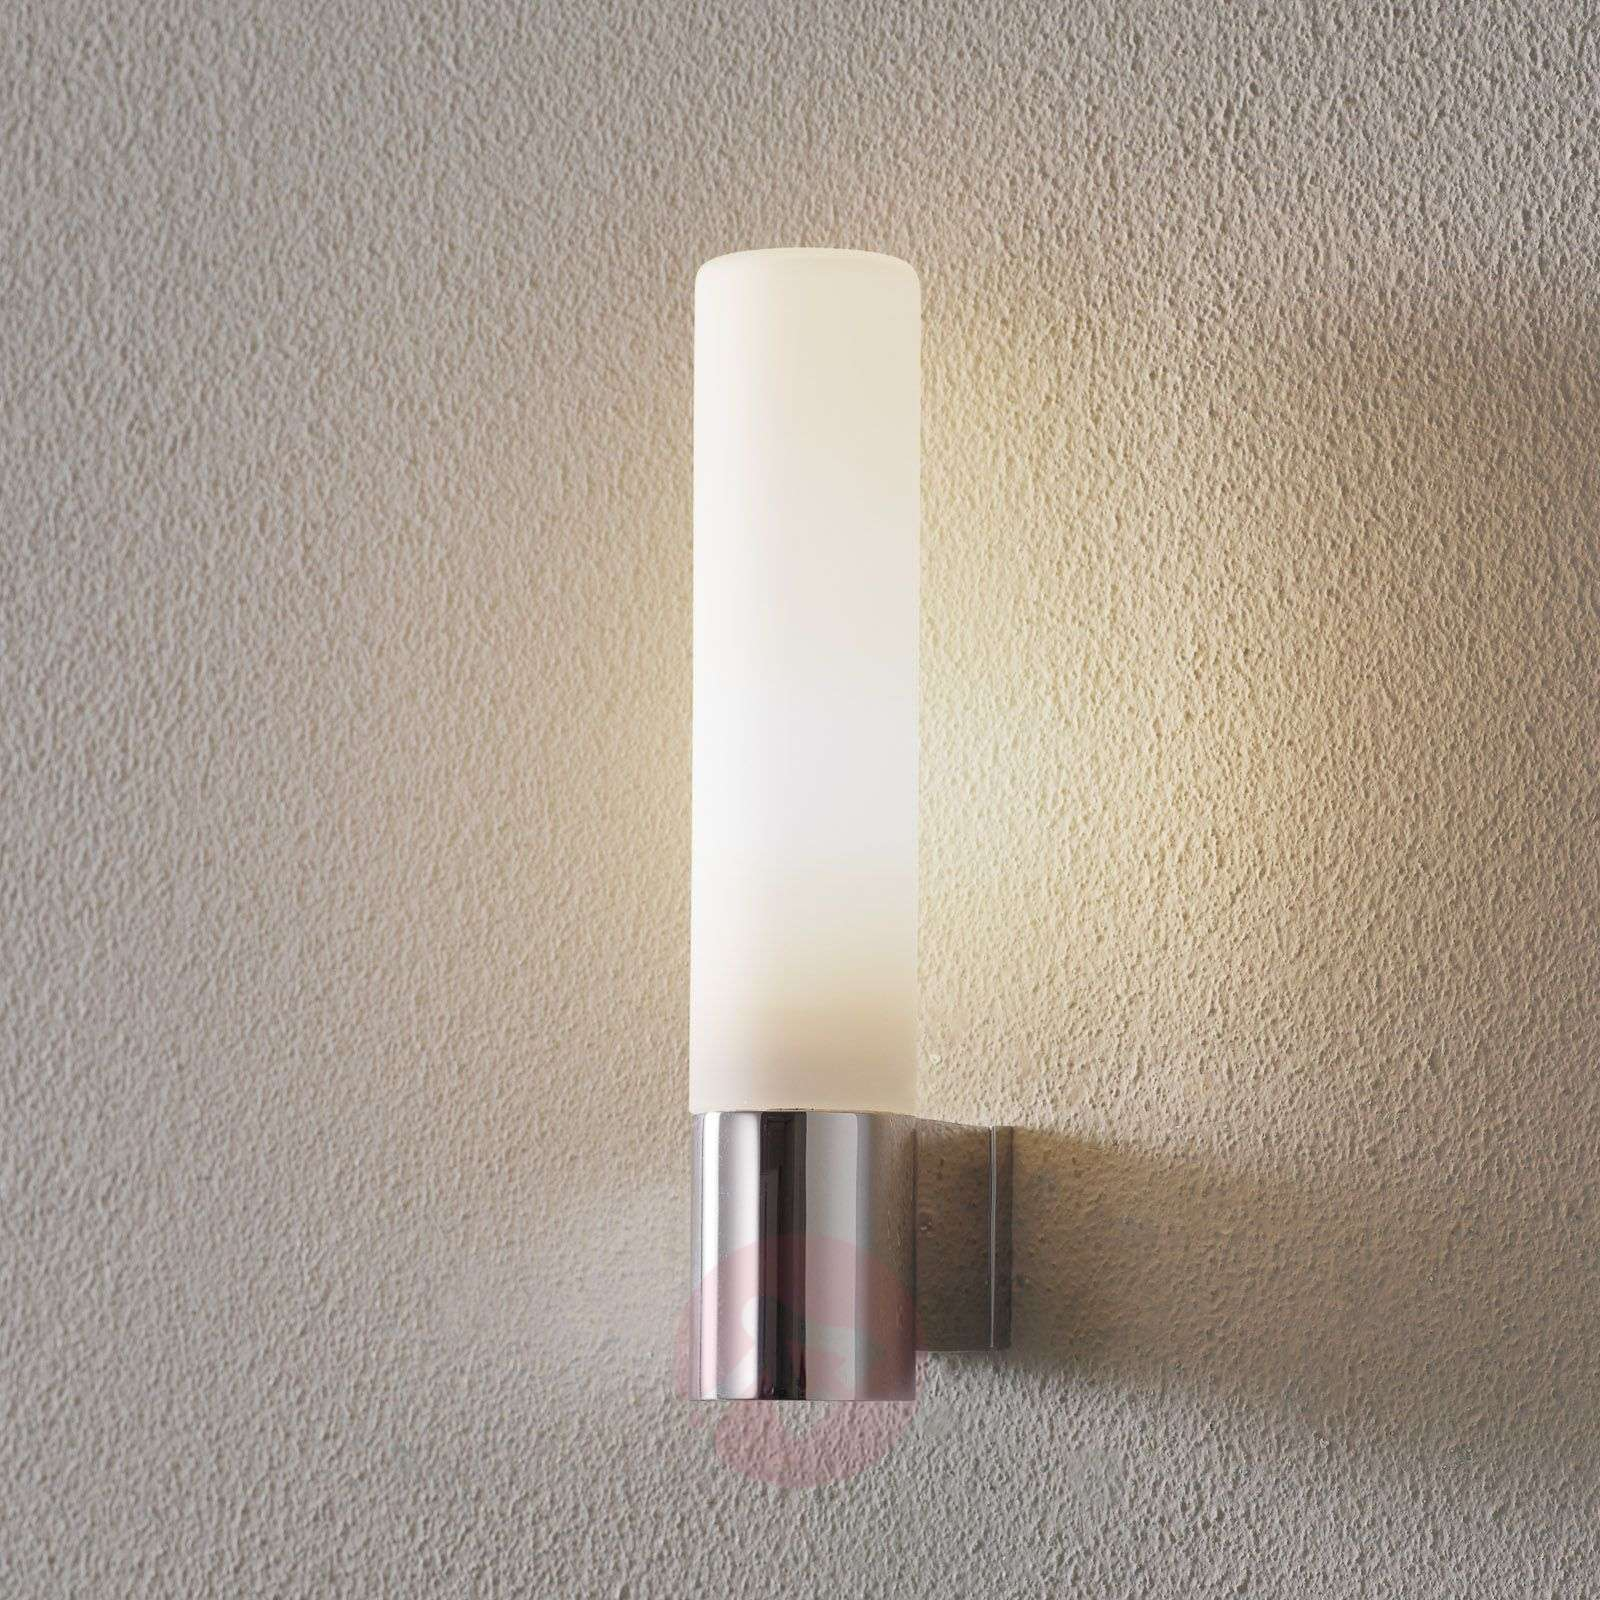 Bari Bathroom Wall Light with White Glass-1020012-02